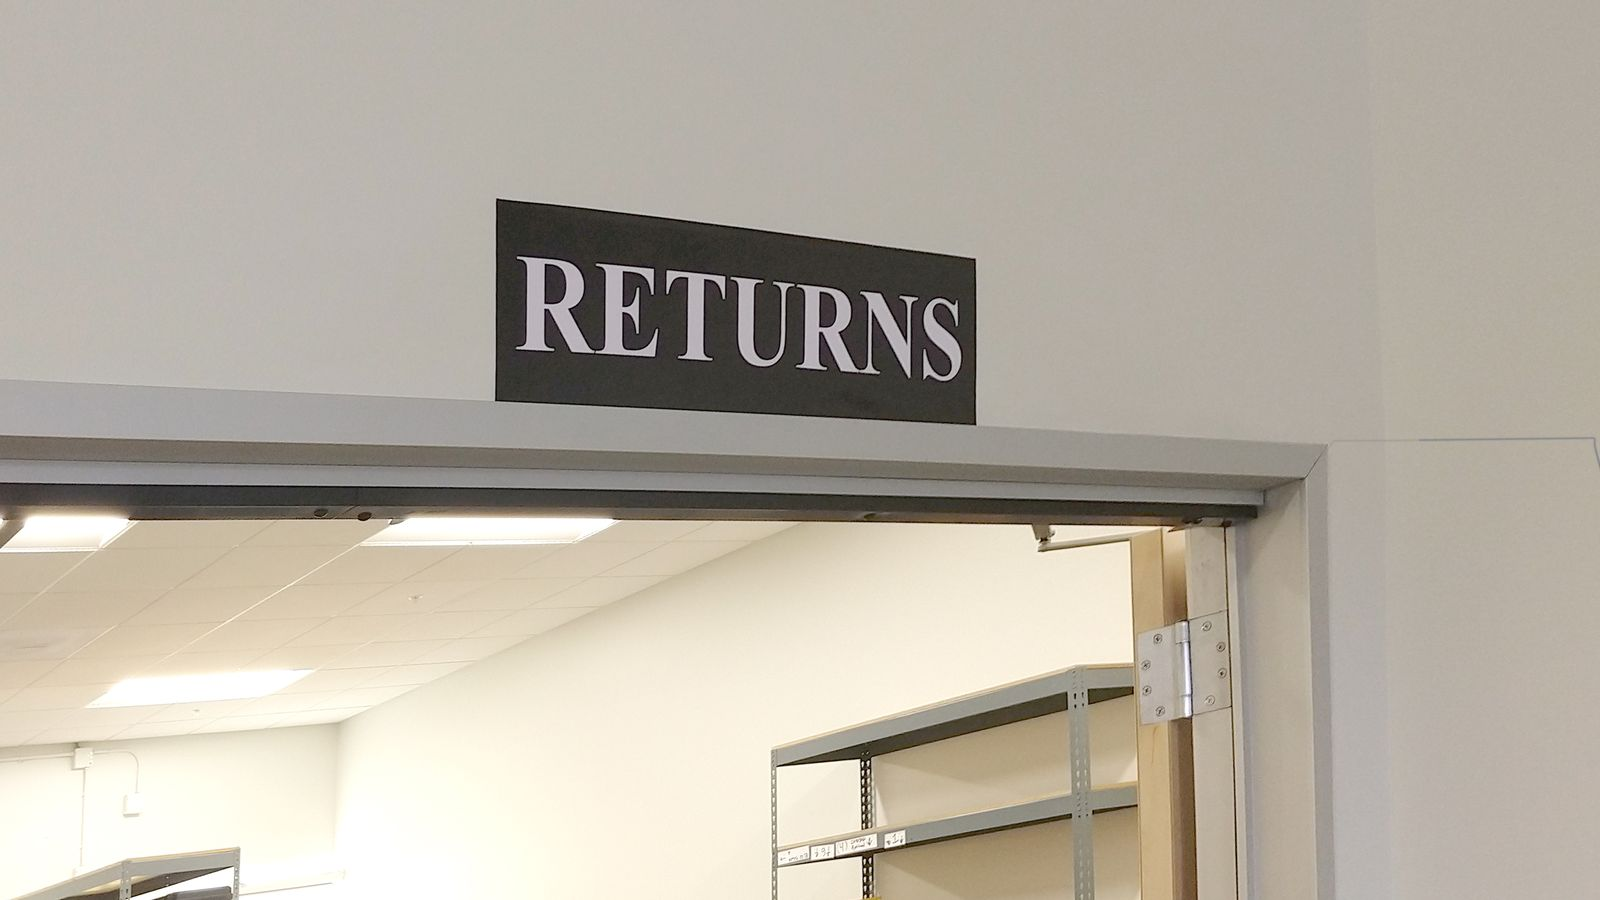 Returns wall decal